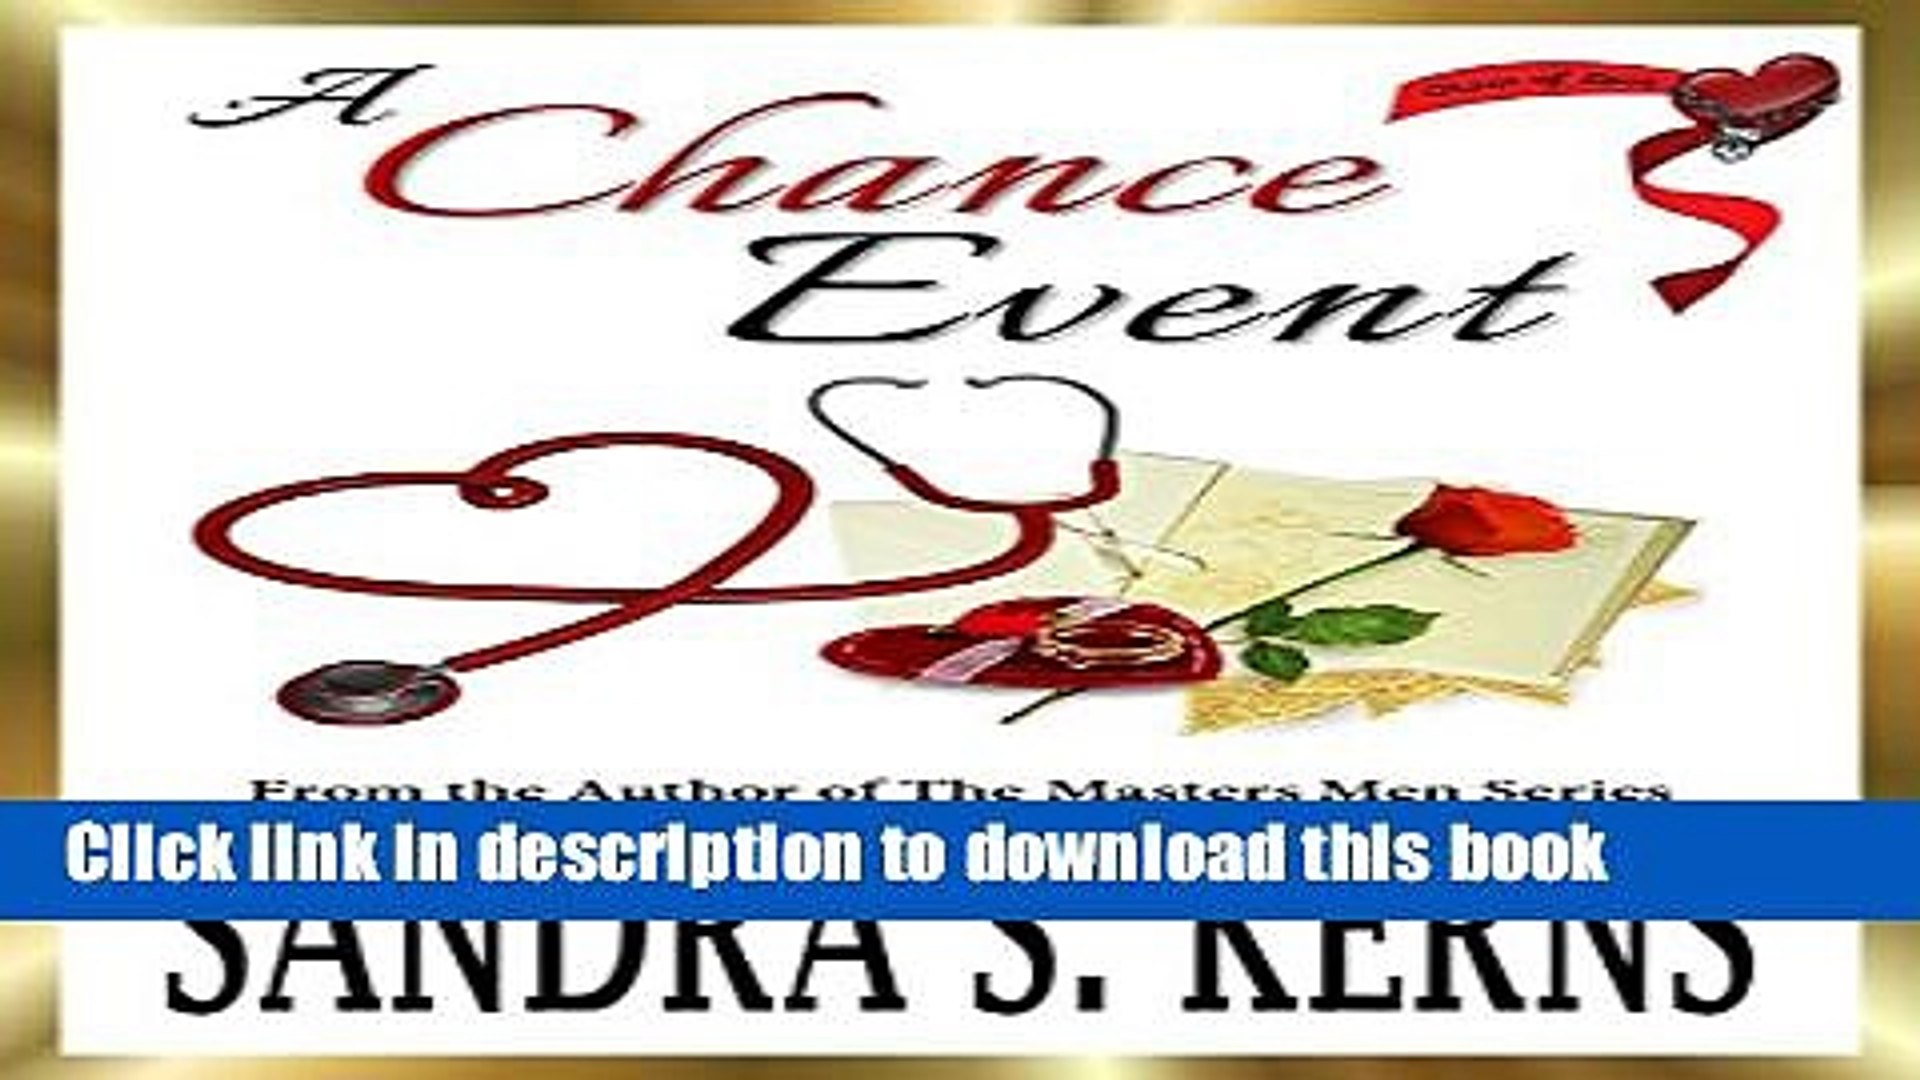 [PDF] A Chance Event: A Chain of Love Novella Reads Online